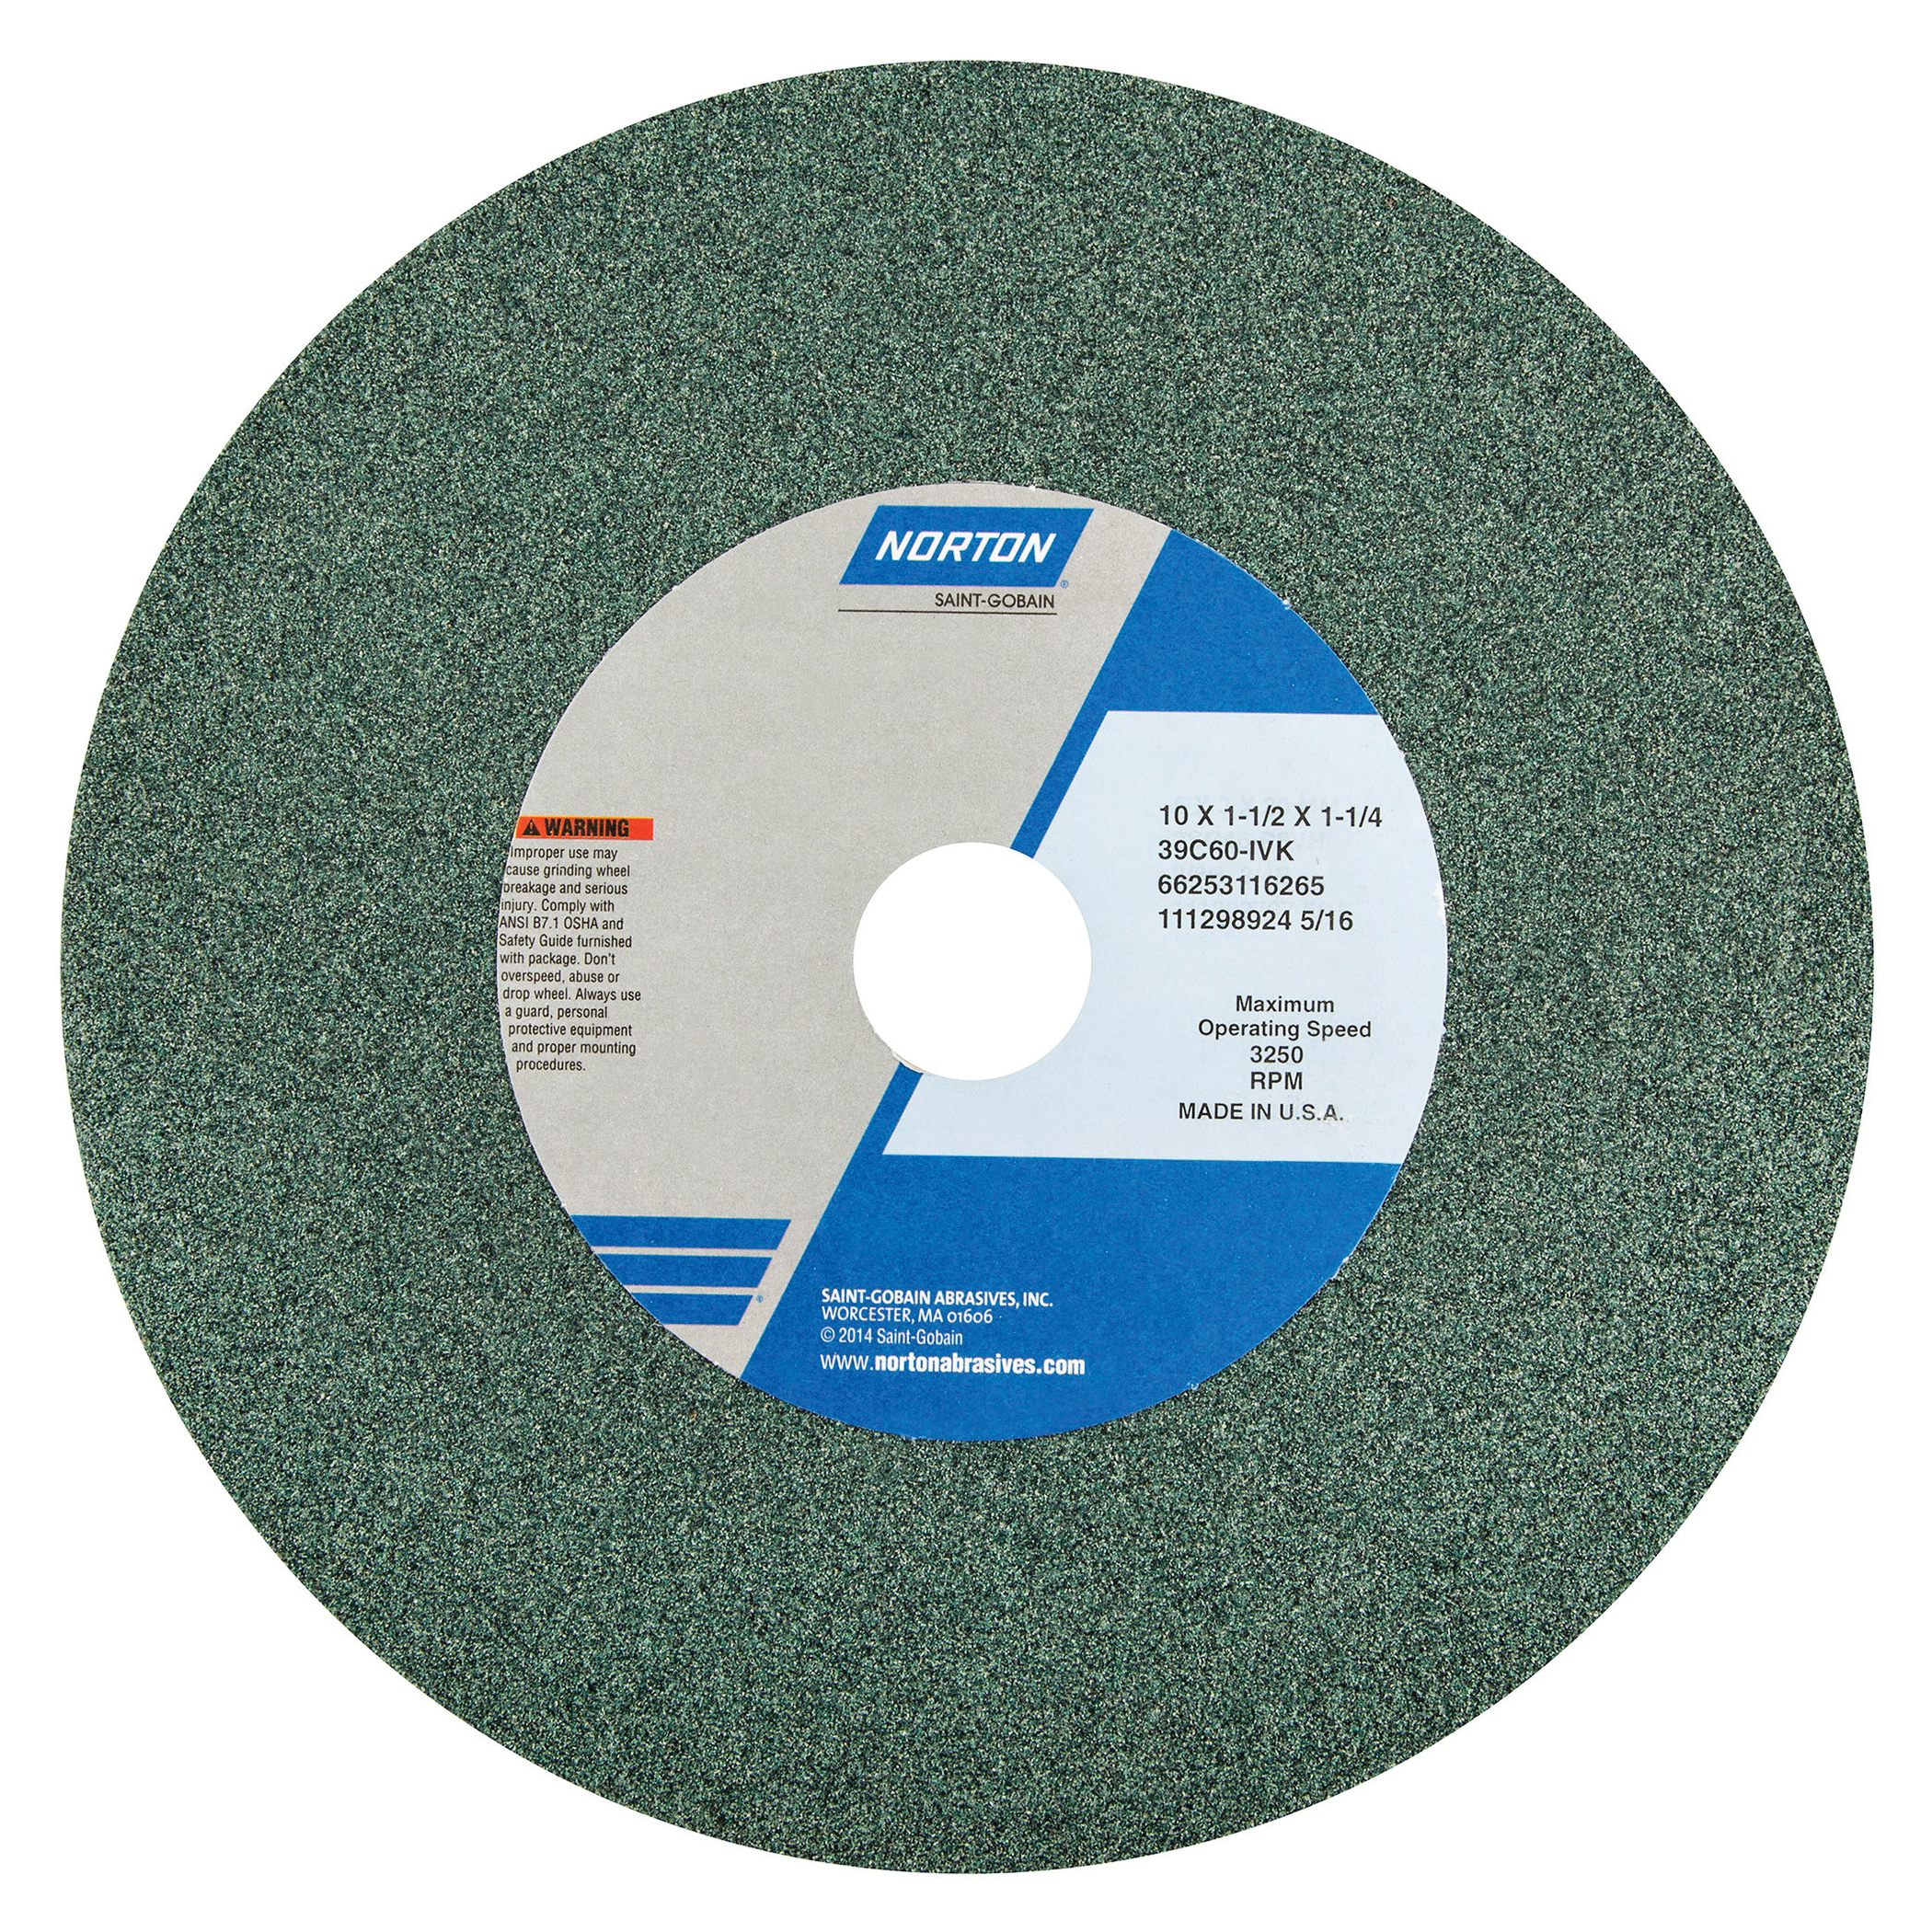 Norton® 66253116265 39C Straight Bench and Pedestal Grinding Wheel, 10 in Dia x 1-1/2 in THK, 1-1/4 in Center Hole, 60 Grit, Silicon Carbide Abrasive